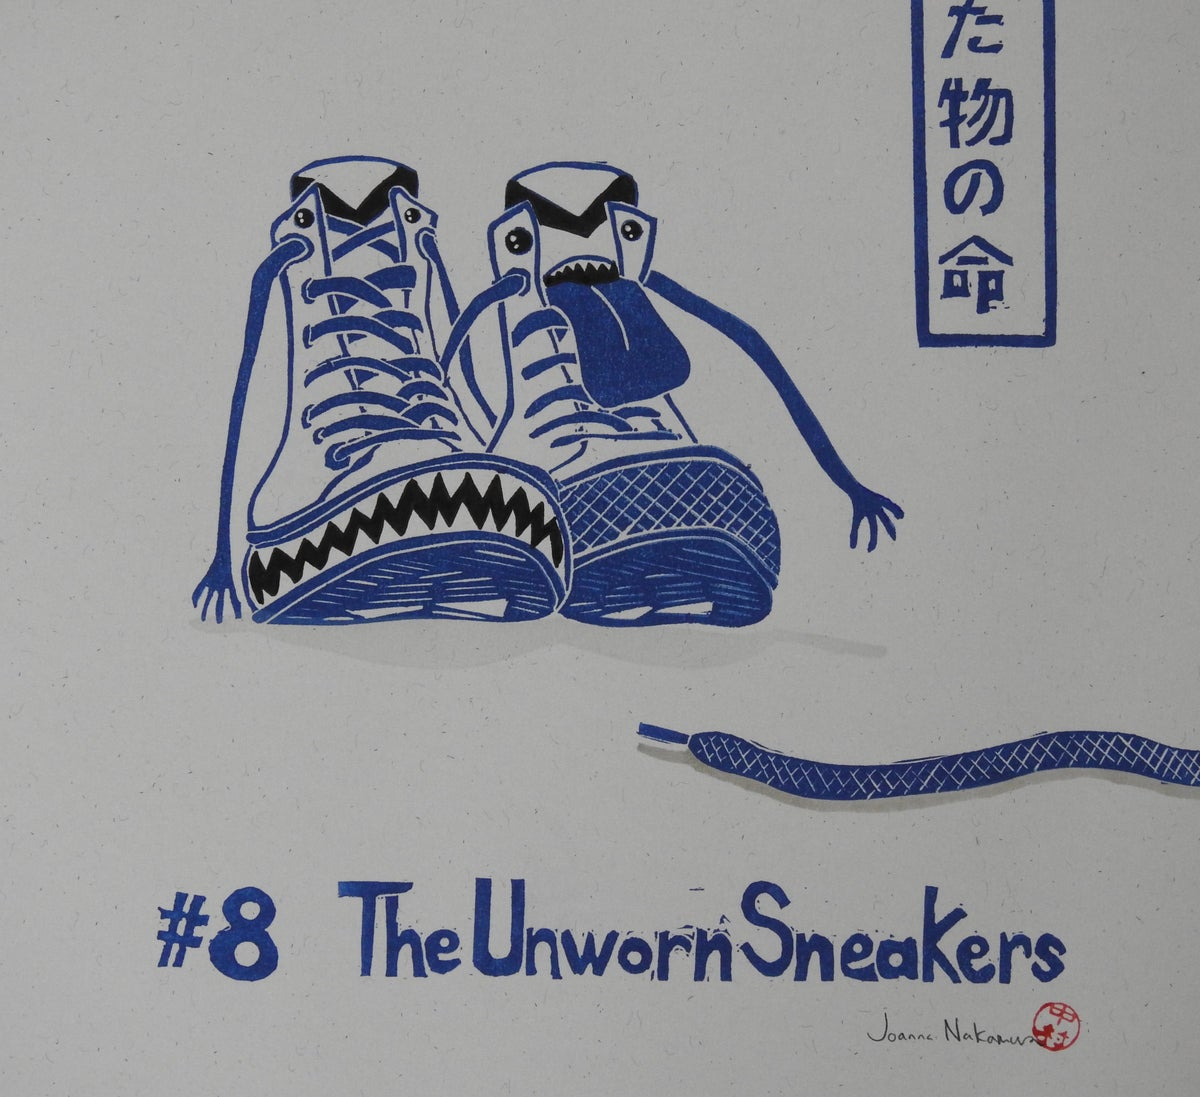 Image of The Life of Discarded Things - No. 8 'The Unworn Sneakers'